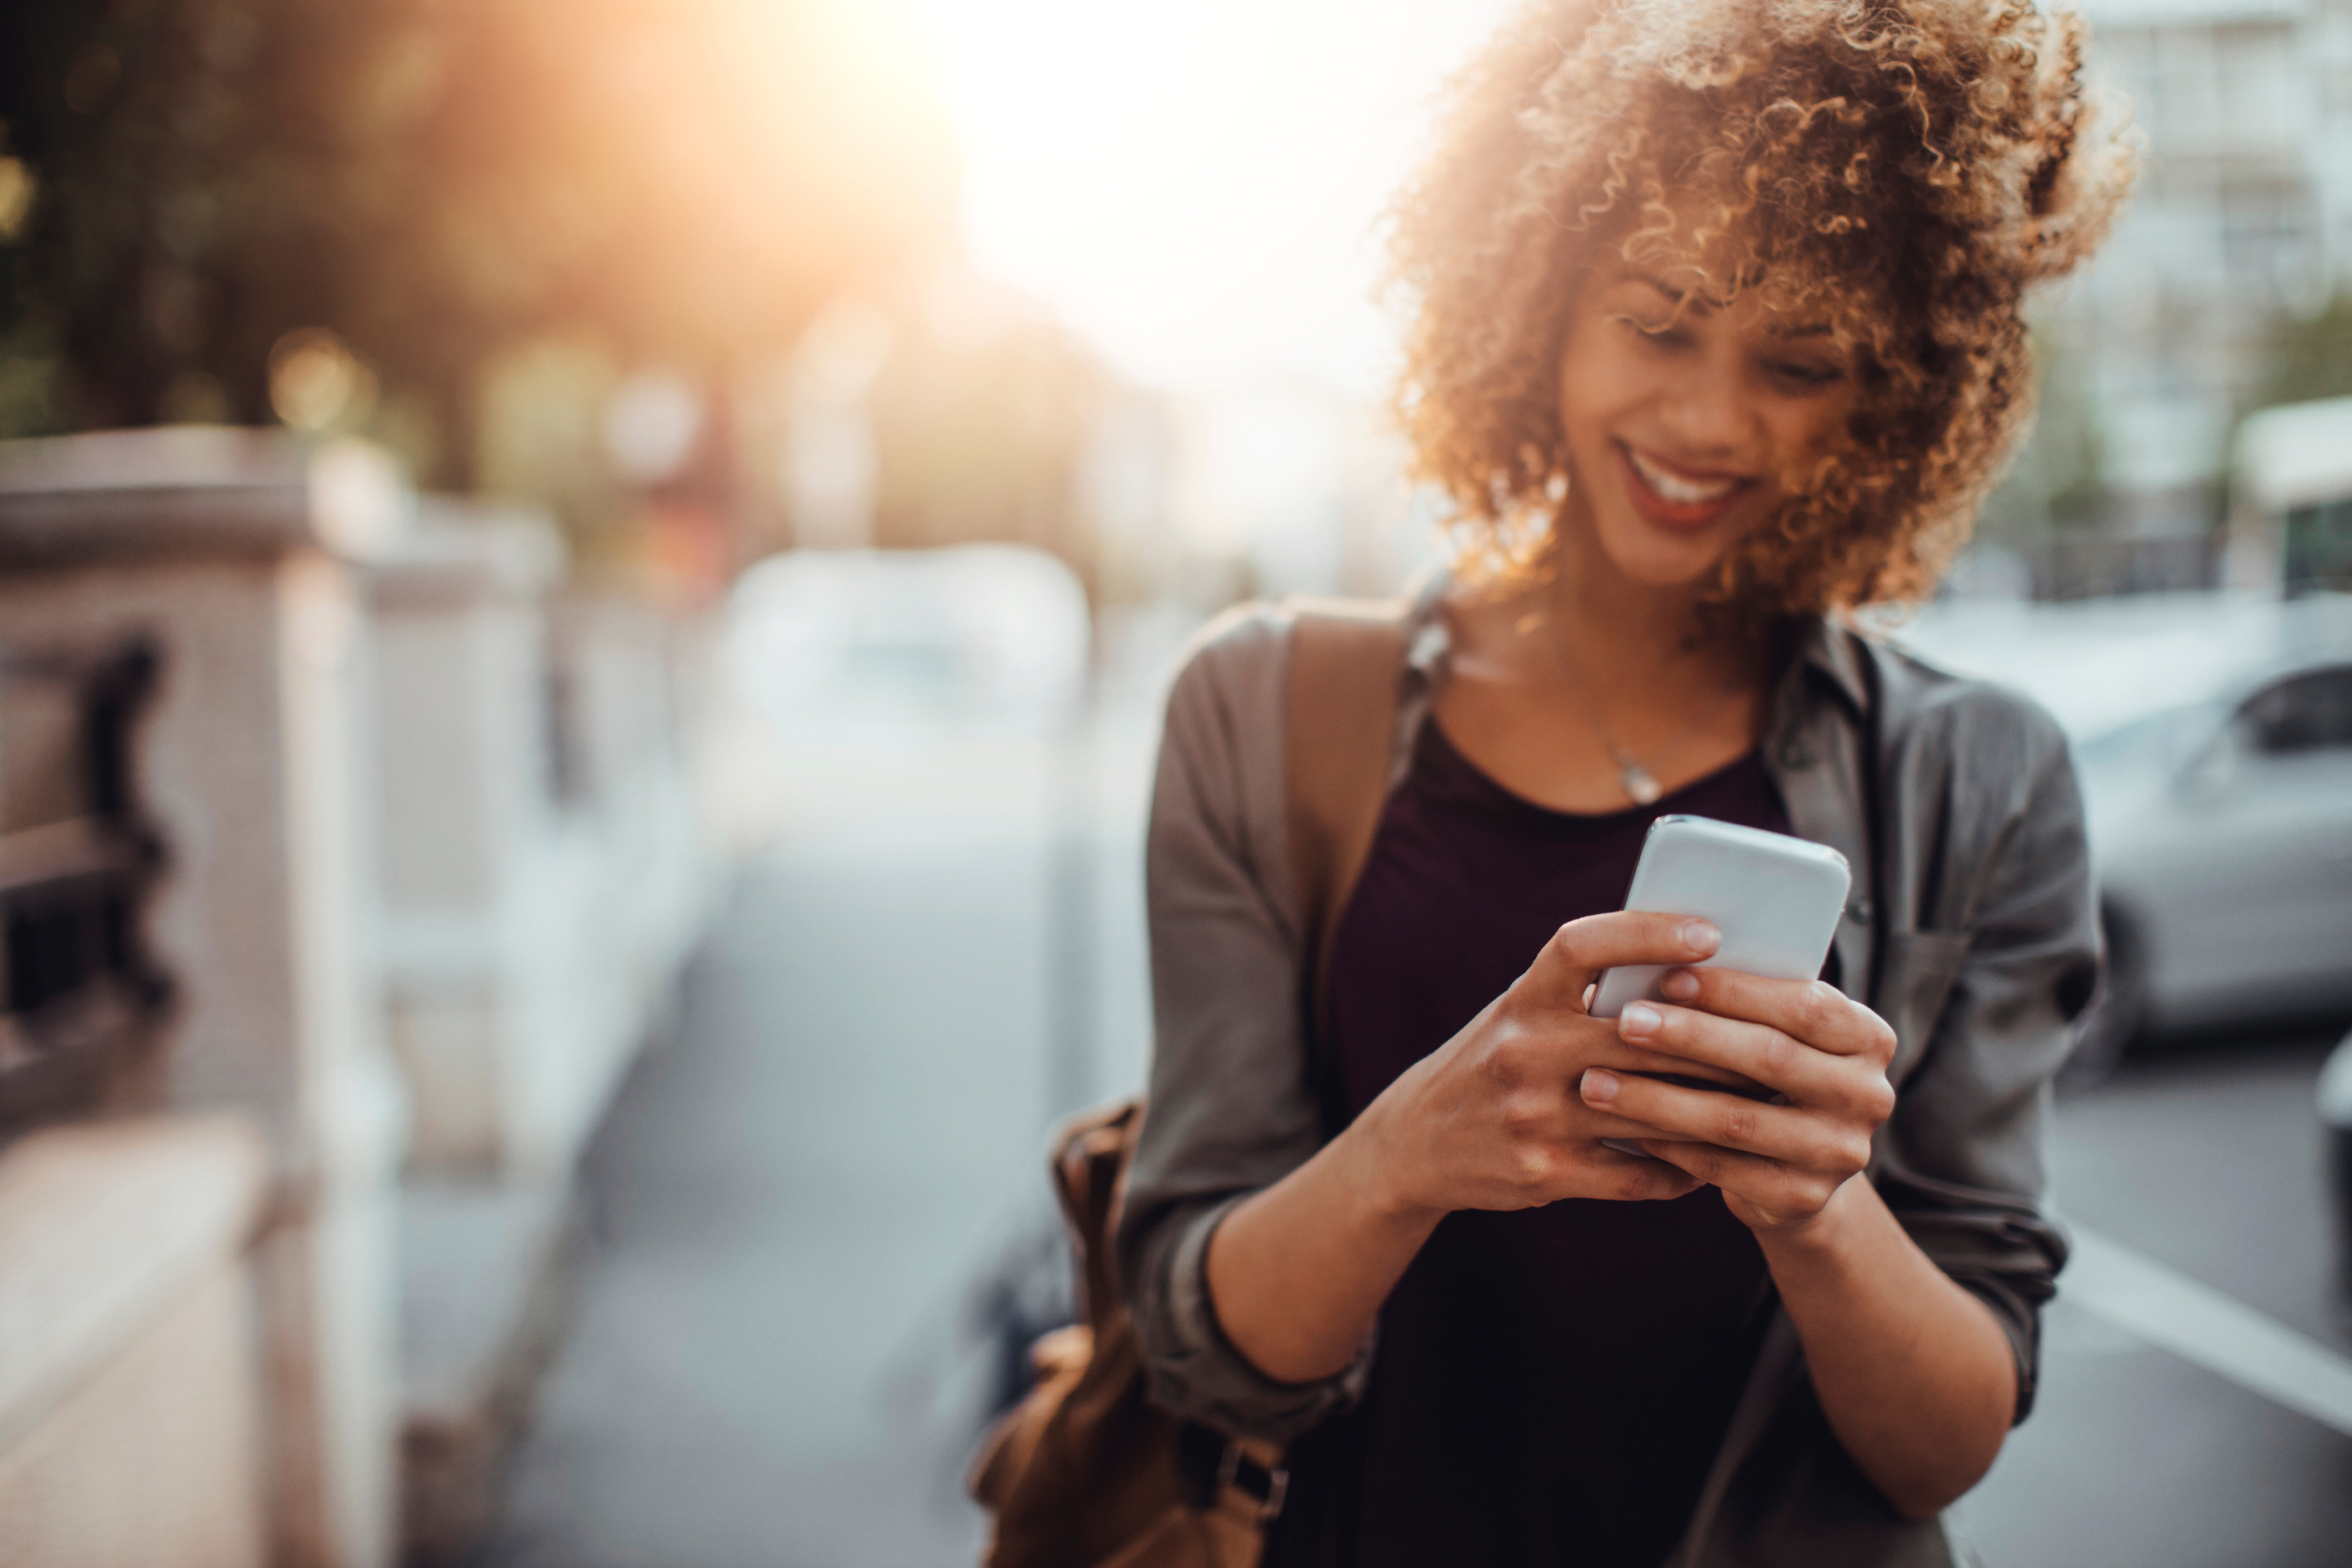 How brands can leverage mobile messaging effectively